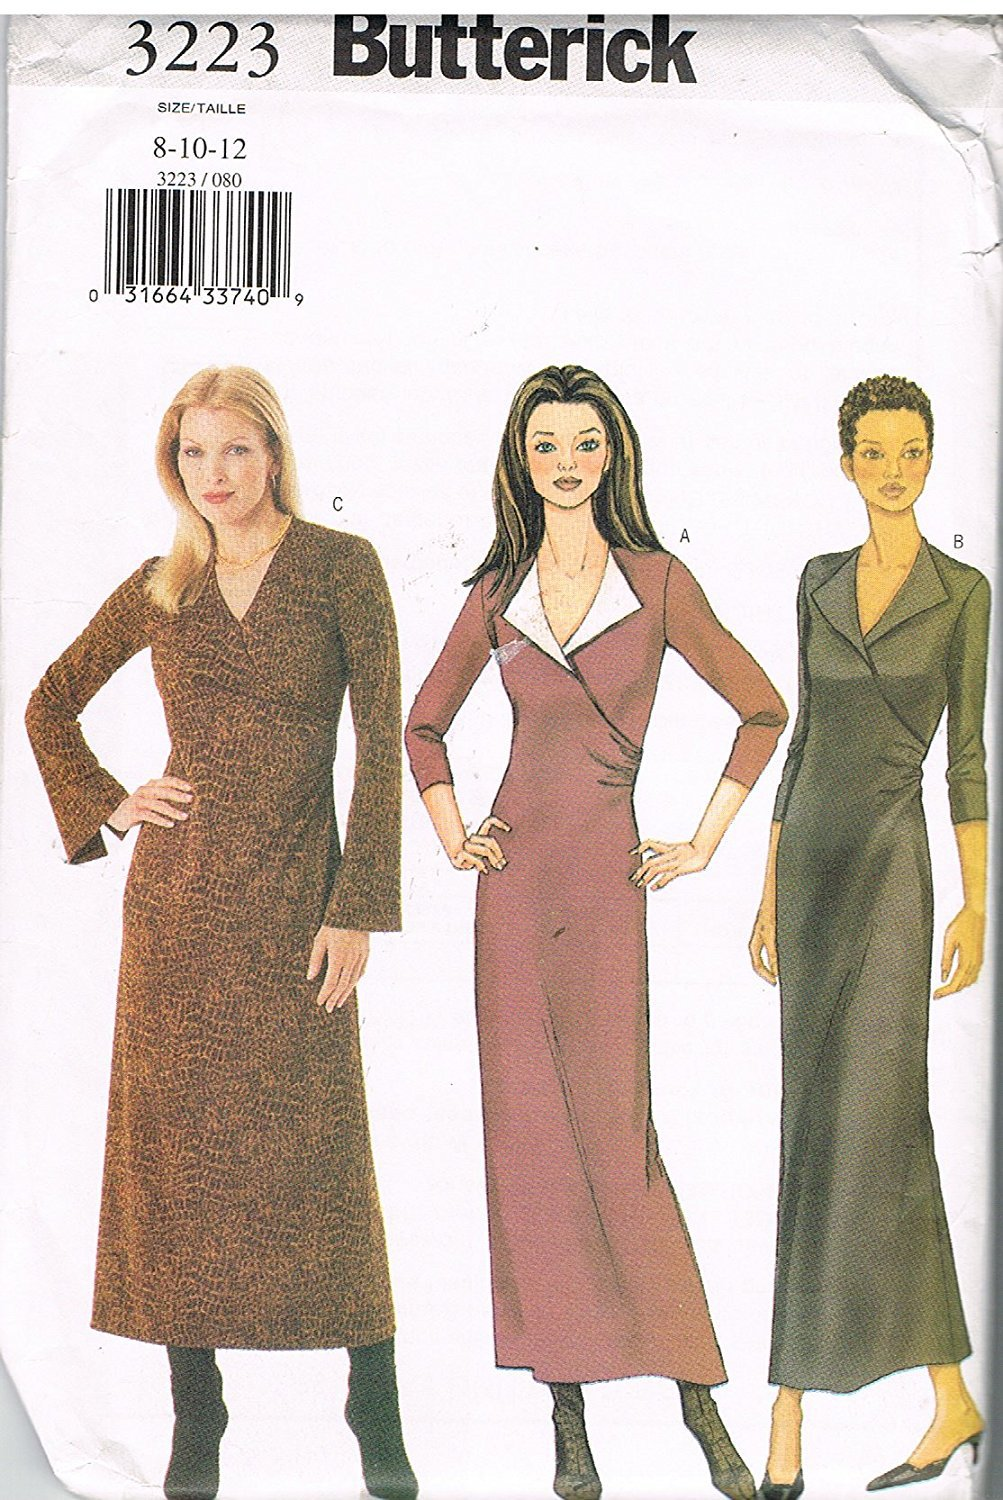 Butterick 3223 Easy A-Line Dress Size 14,16,18